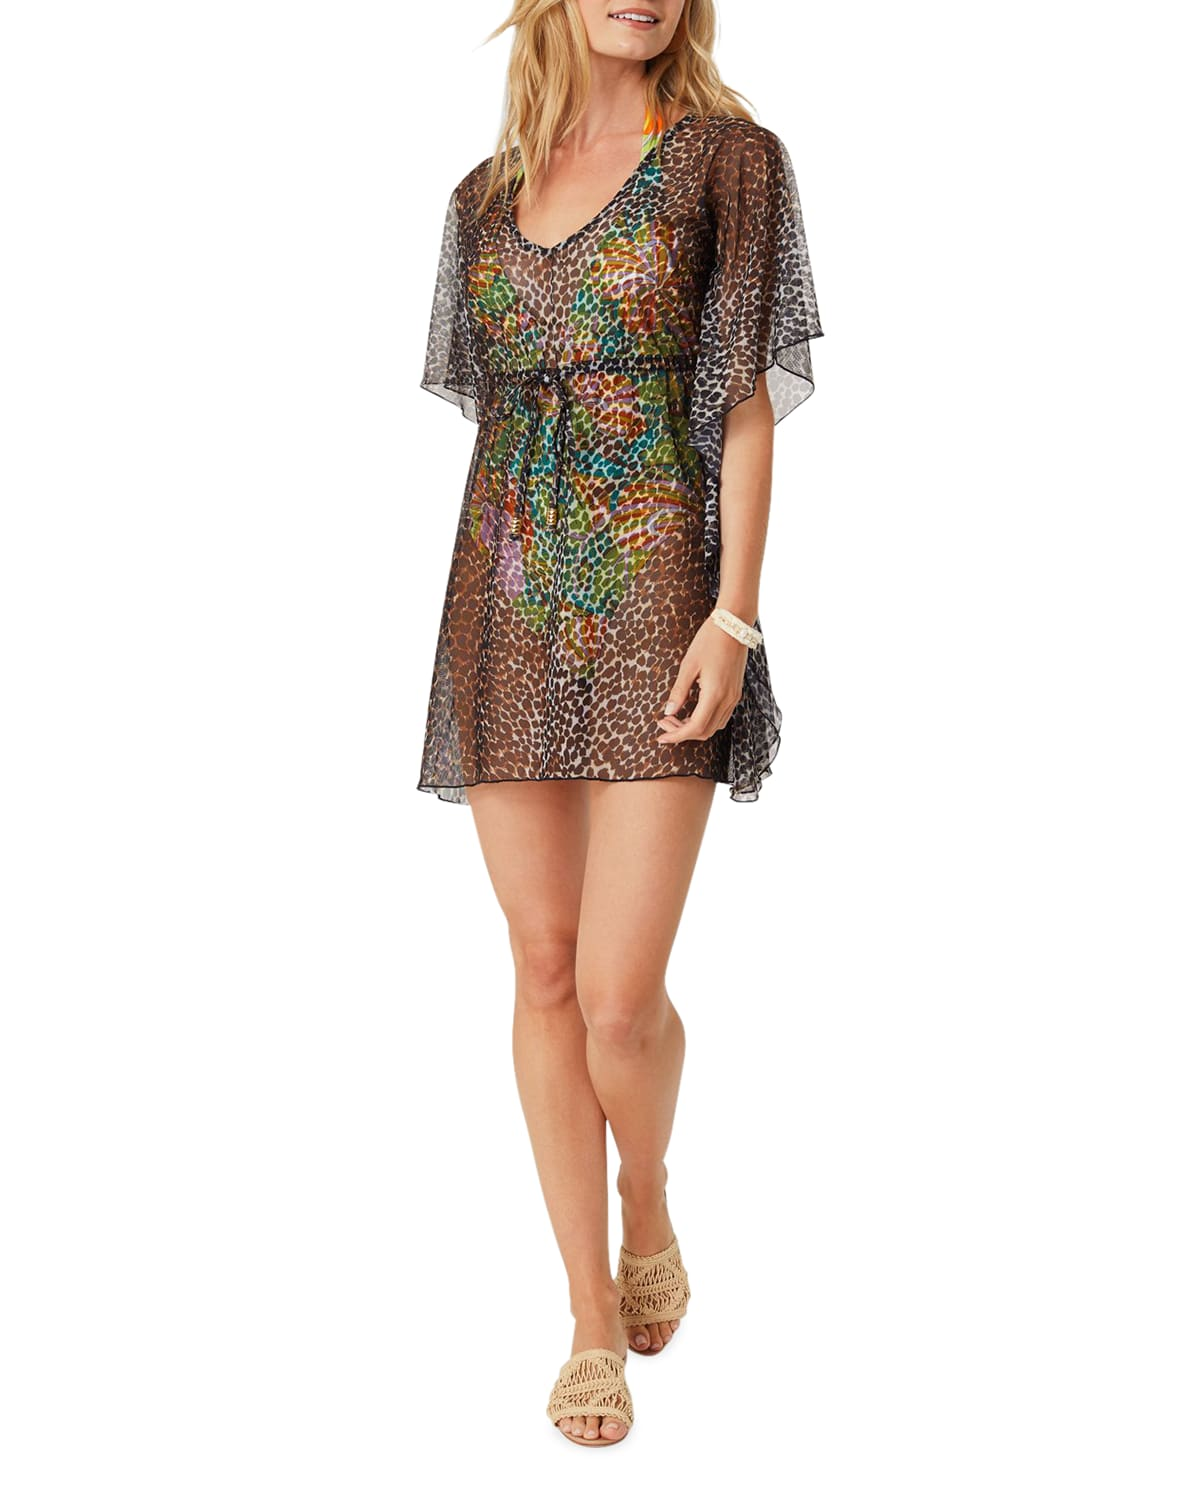 Leopard-Print Luxe Coverup with Tie Waist